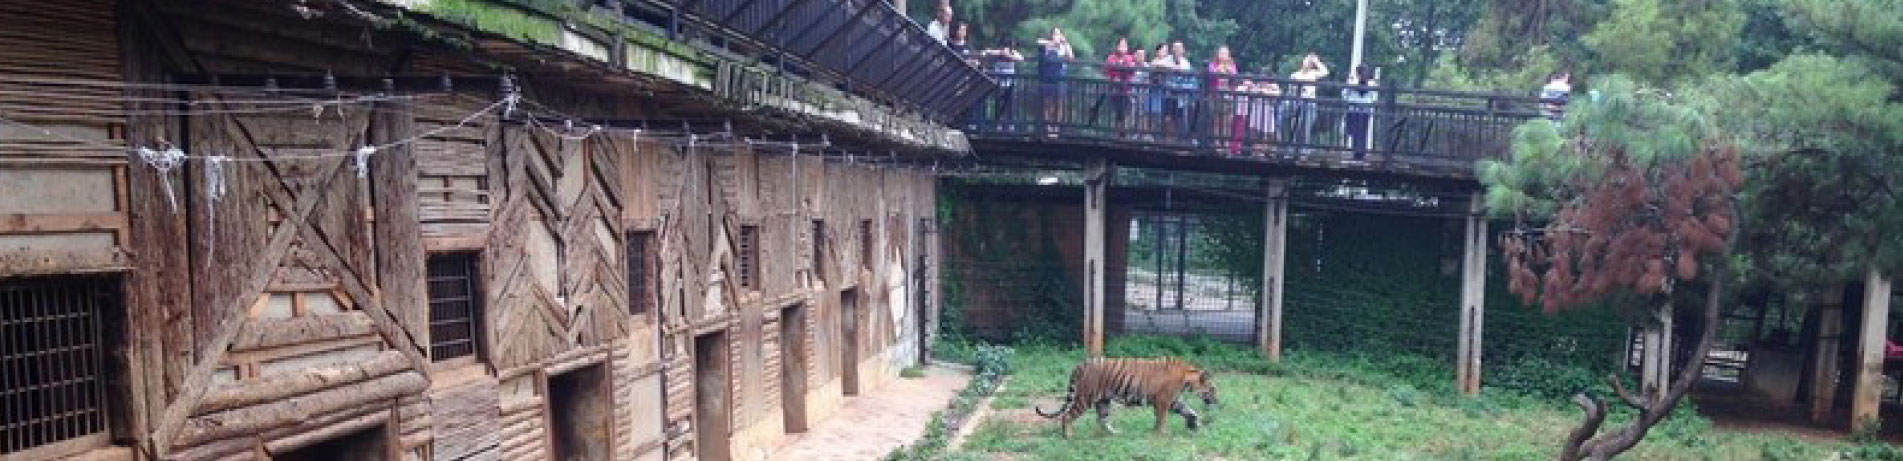 Captive tiger in an enclosure with people watching from an overhead walkway